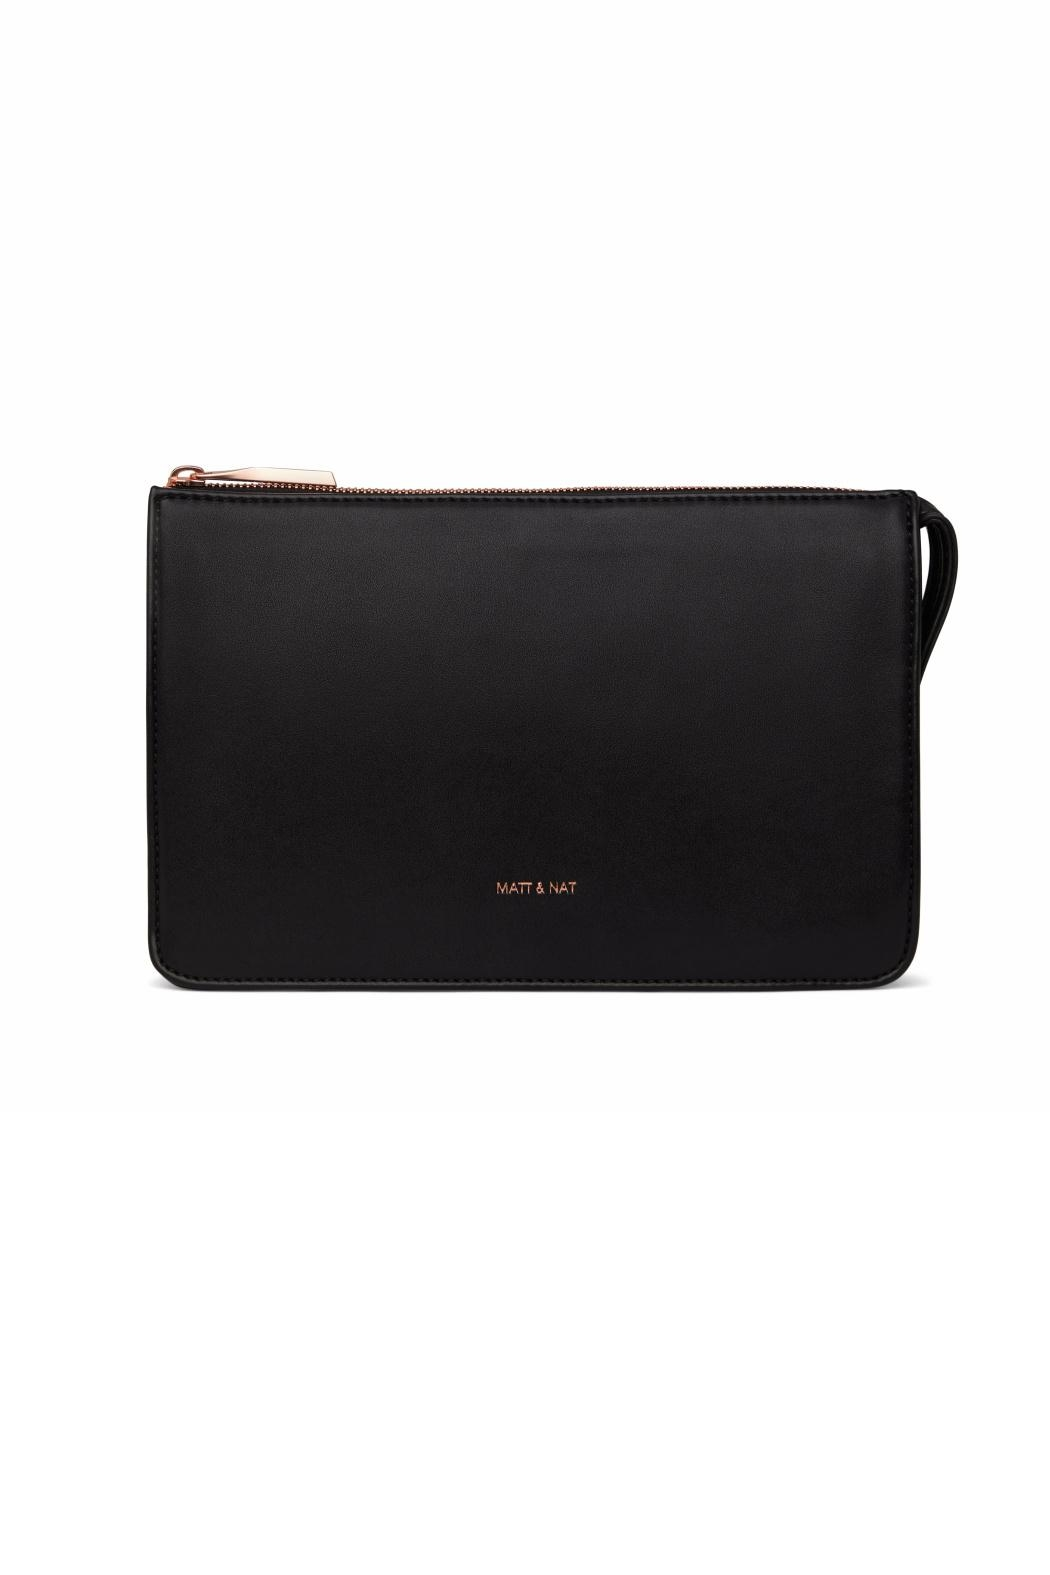 Matt & Nat Tori Vegan Crossbody Bag - Main Image